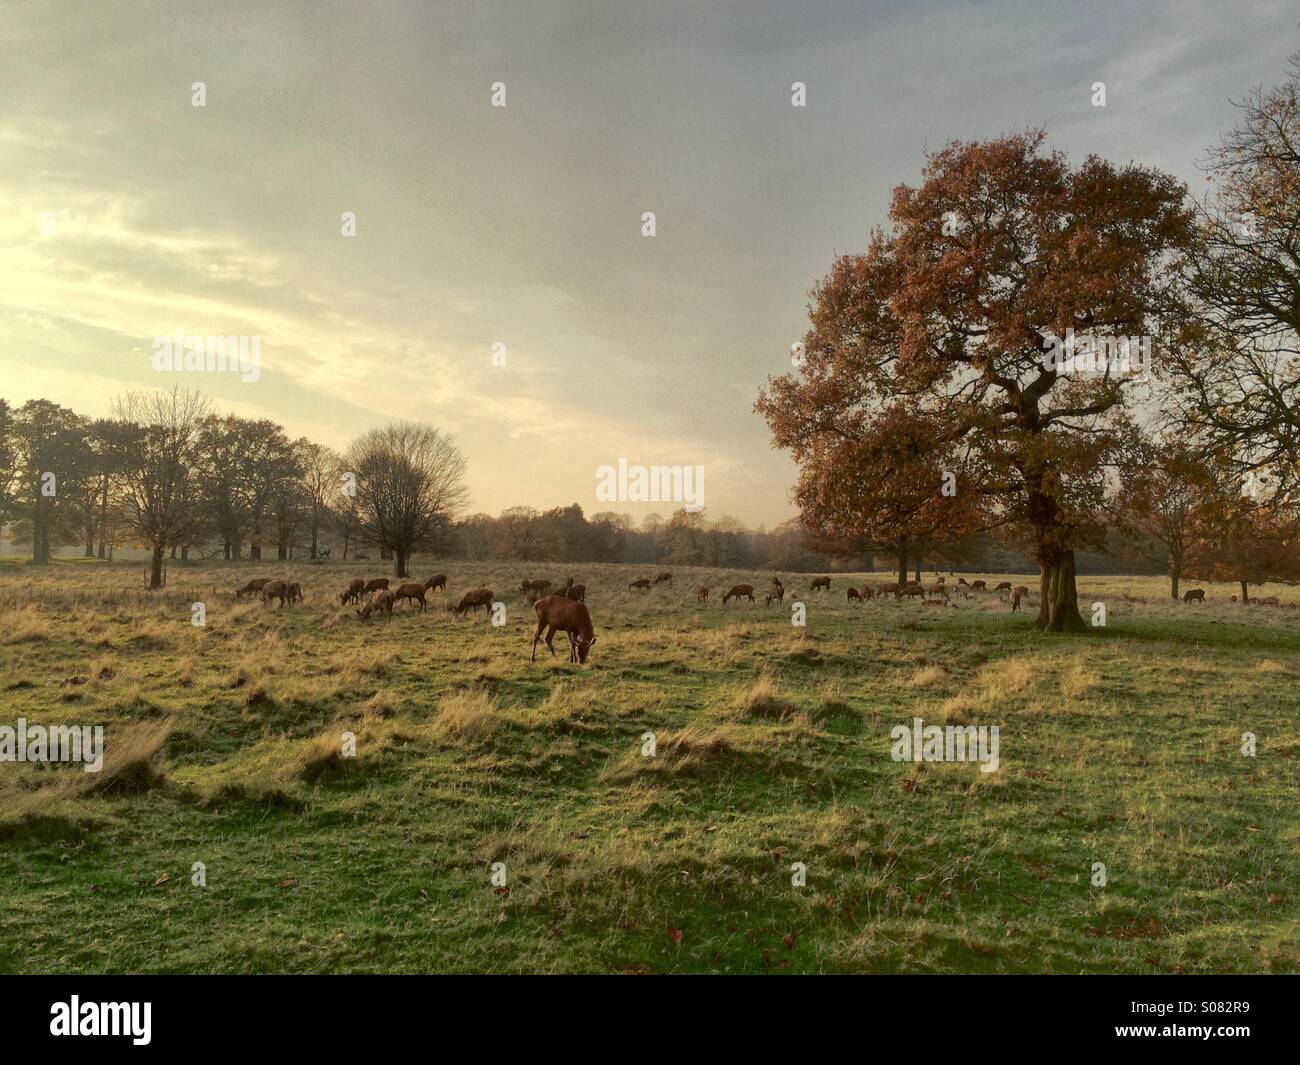 deer-in-tatton-park-cheshire-england-S08